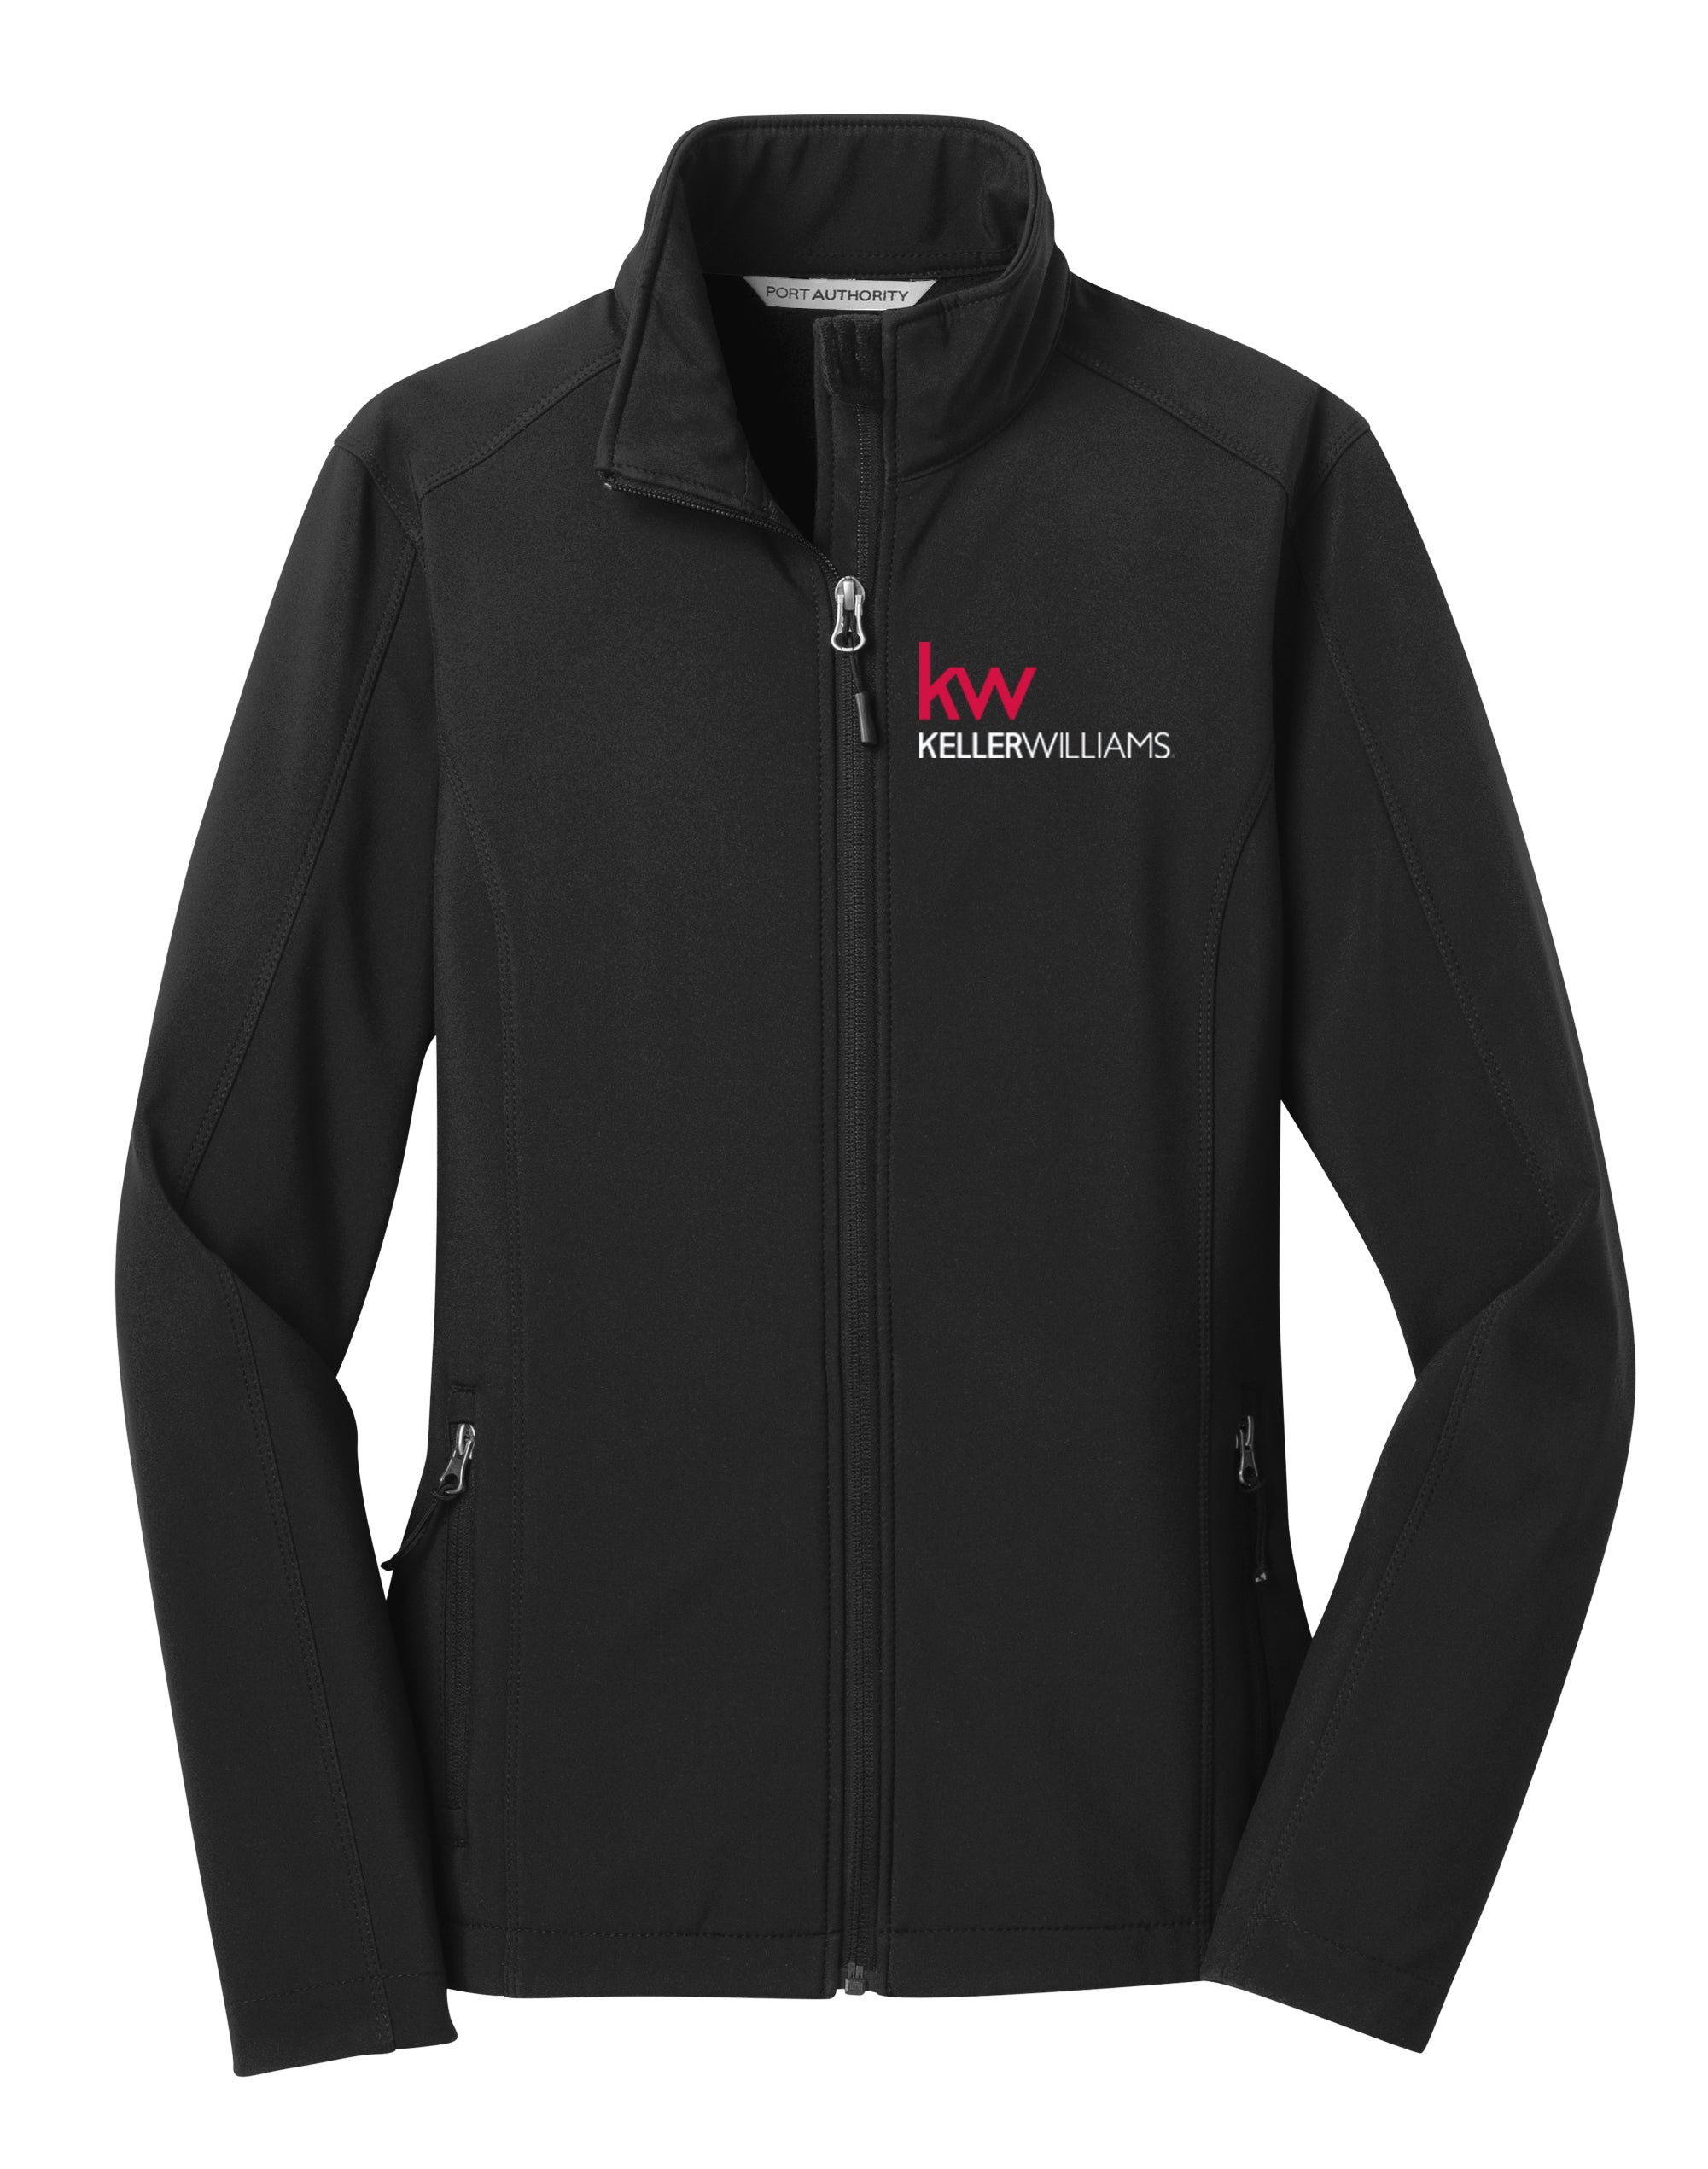 black full zip jacket with Keller Williams logo in embroidery